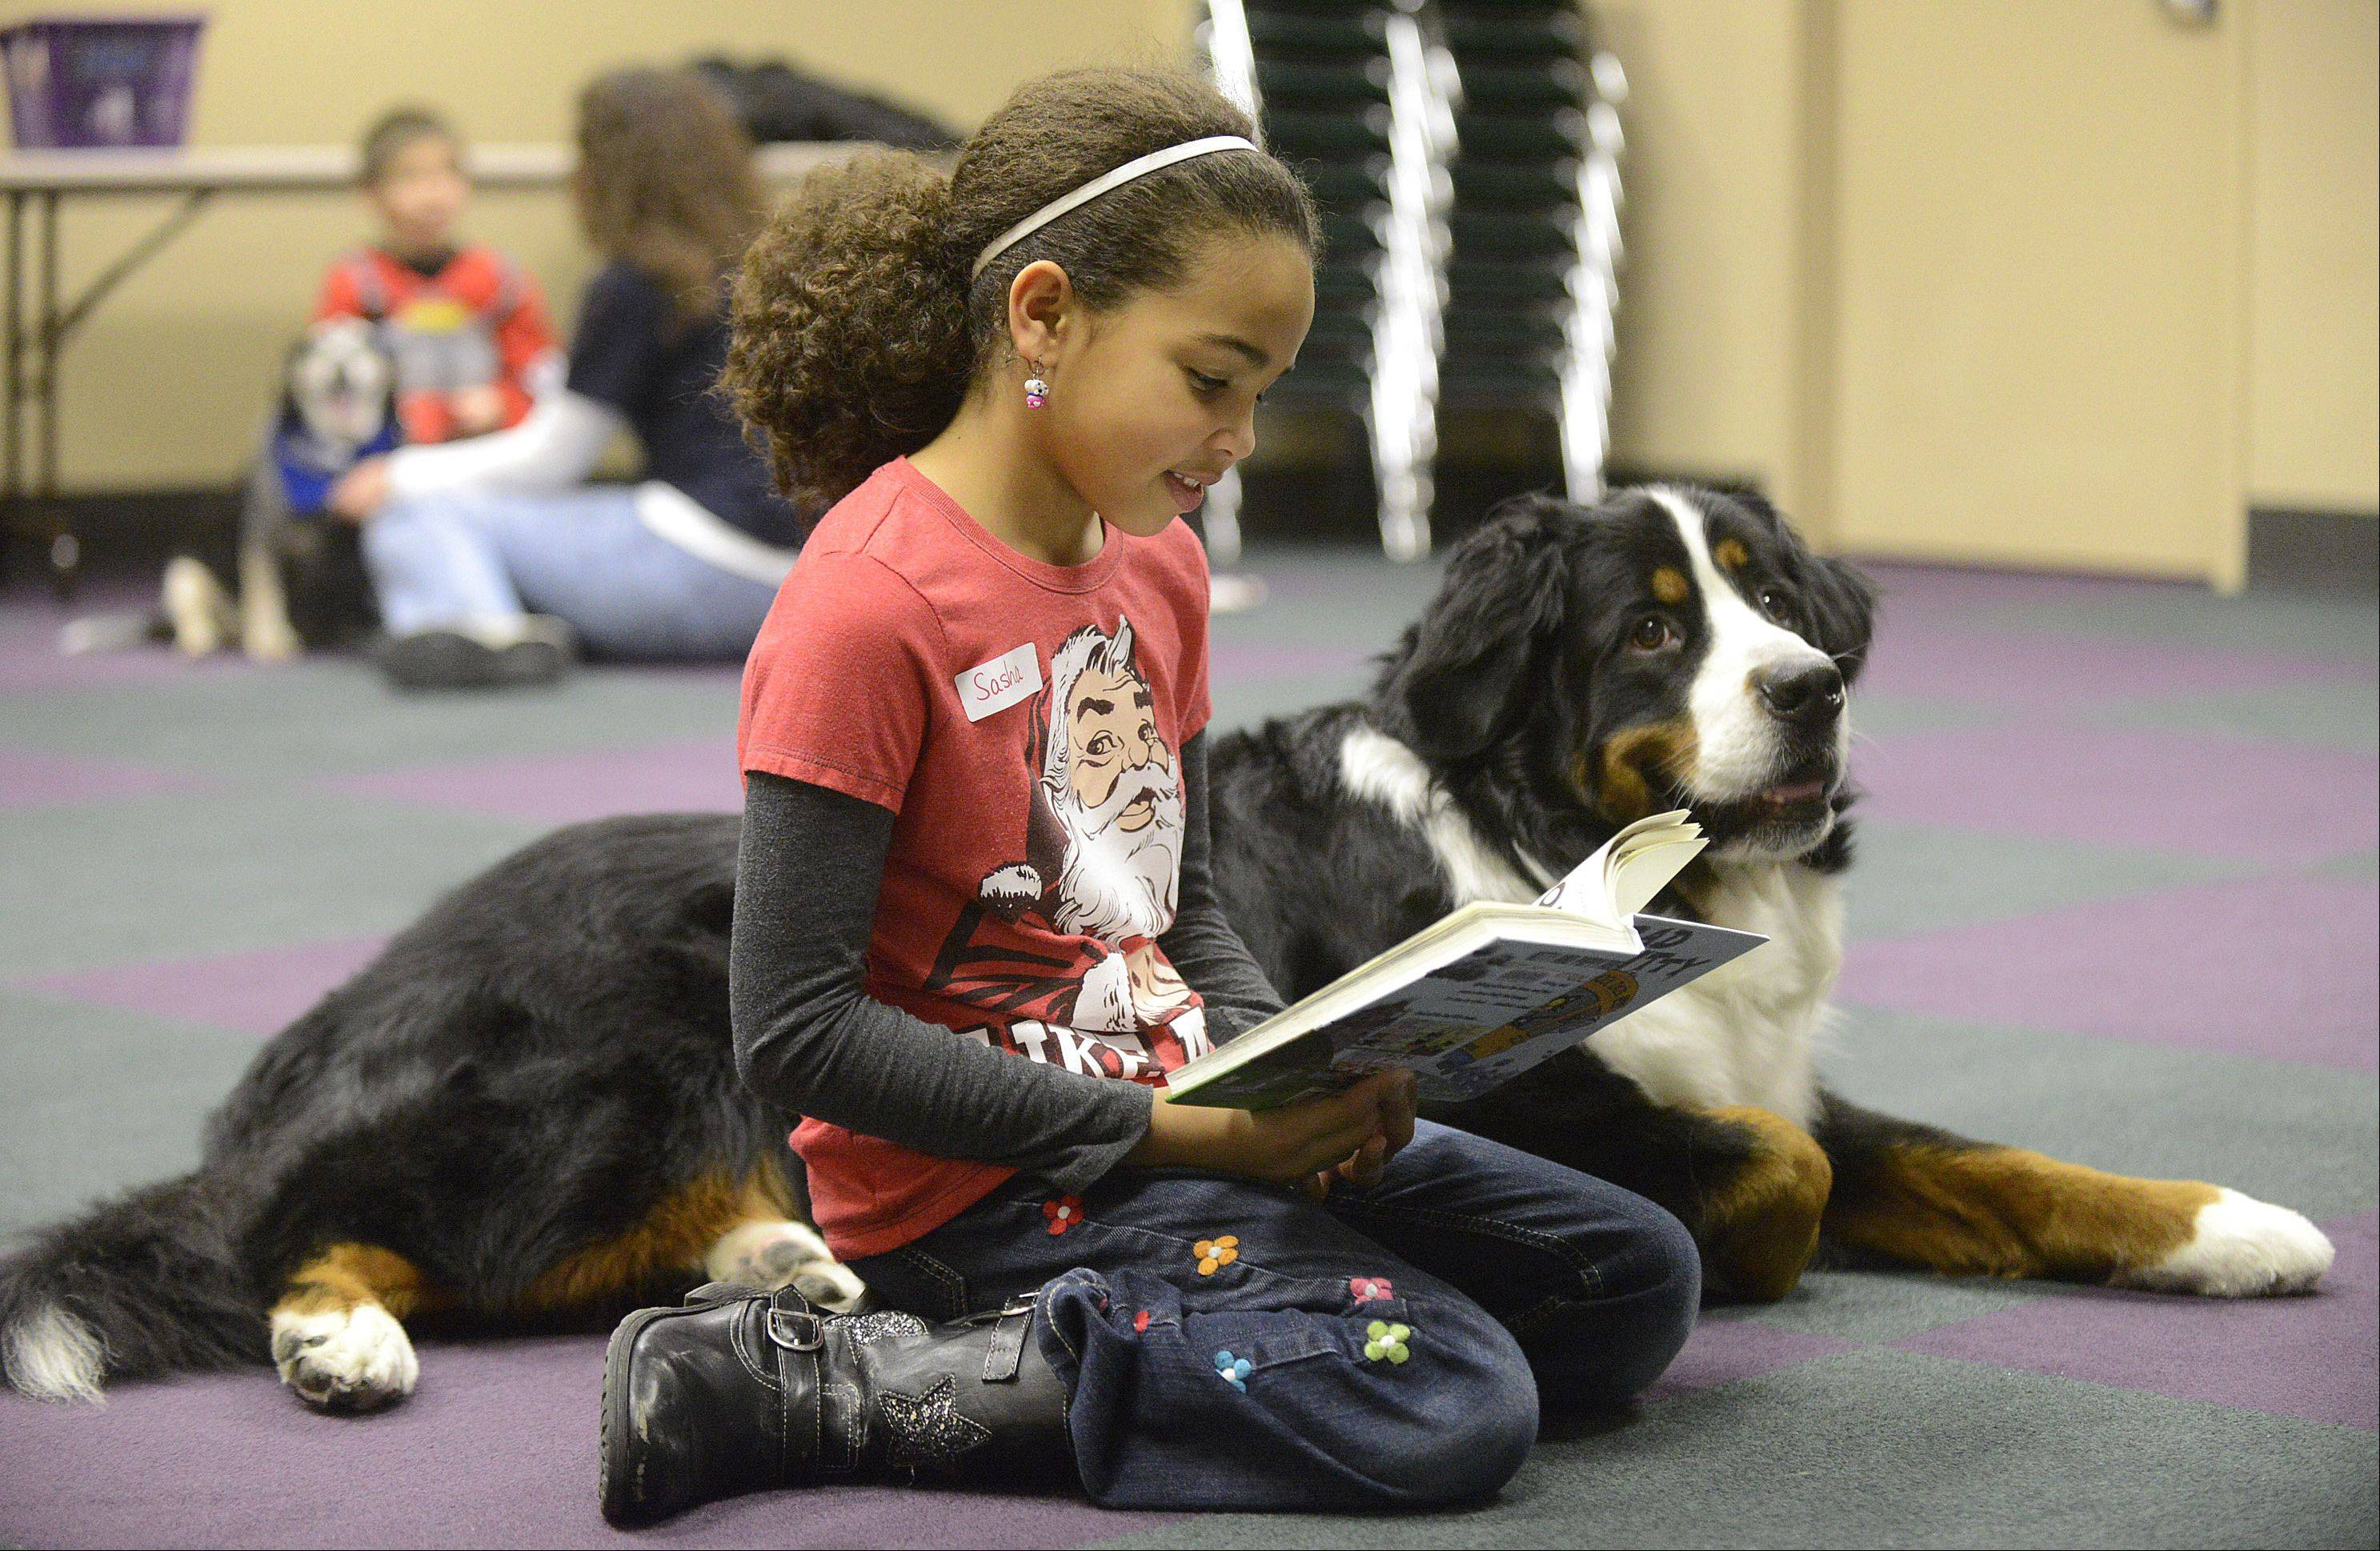 Sasha Mix, 8, of Batavia reads to Bozeman, 5, owned by Gail Banning of Aurora at Batavia Public Library's Paws for Tales reading program on Saturday. This is the fourth time the group has been to the library, but Sasha's first time reading to a dog.